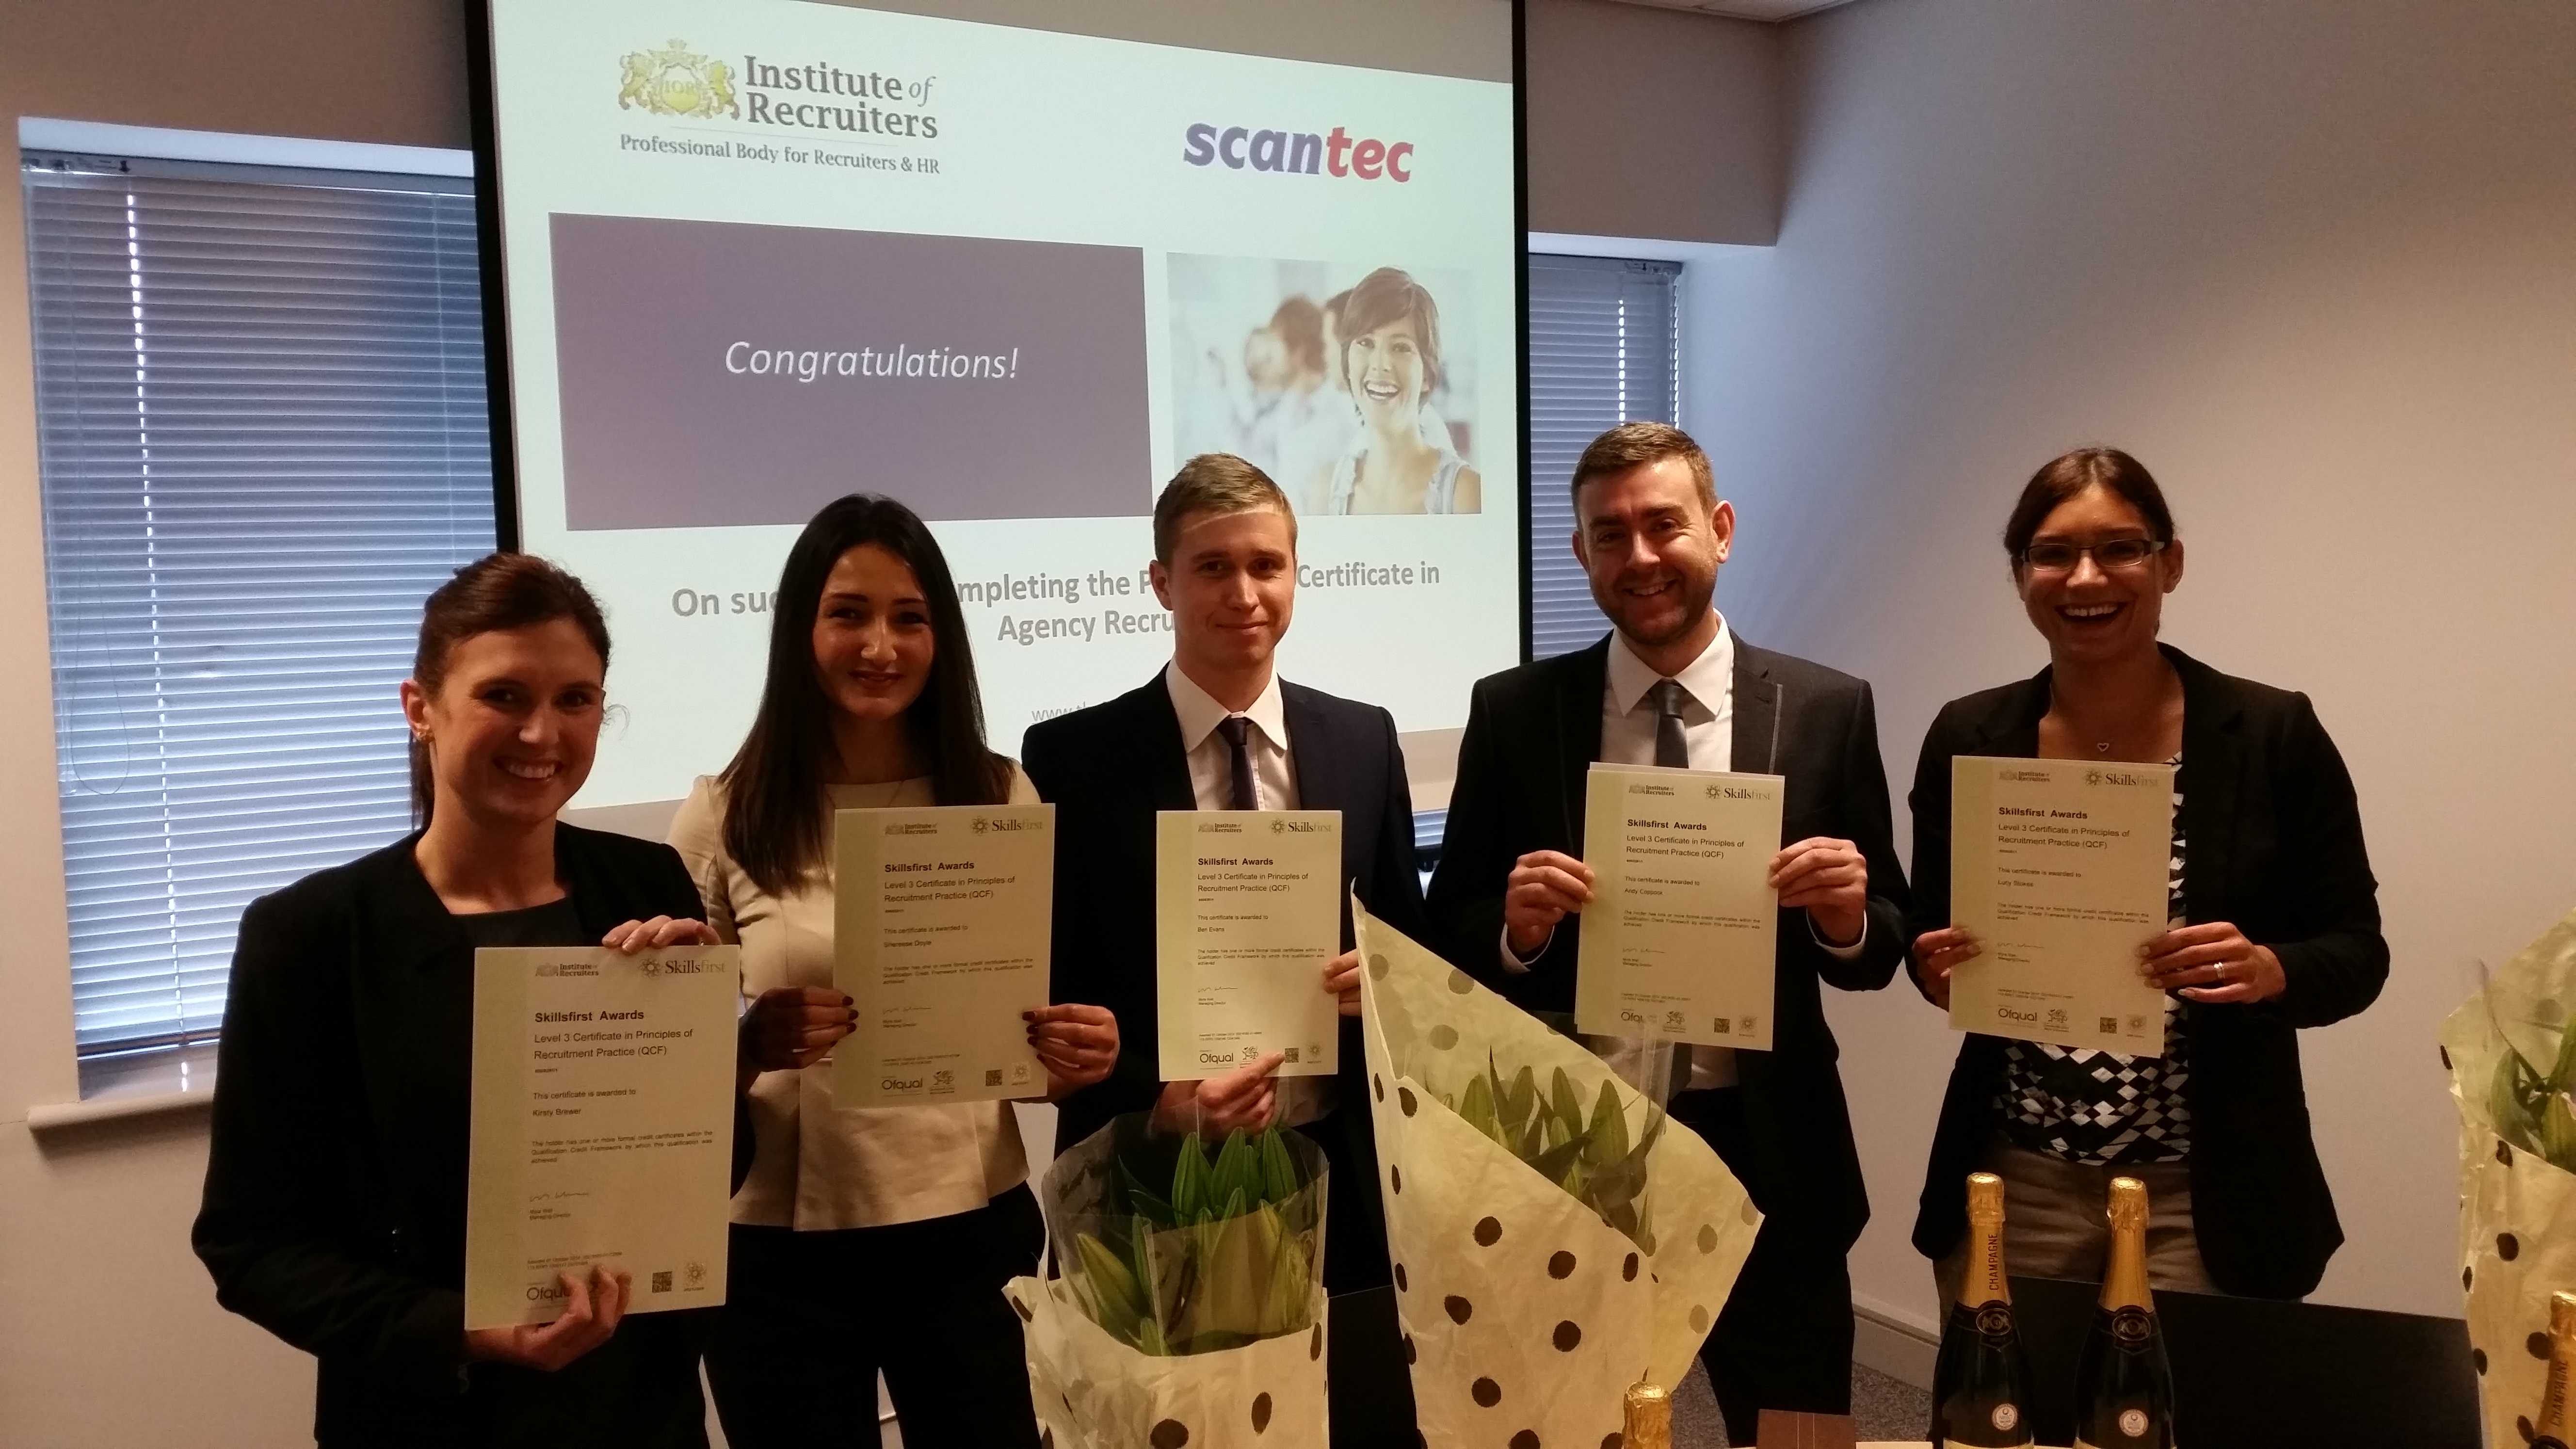 Scantec celebrates first successful IoR certificate cohort